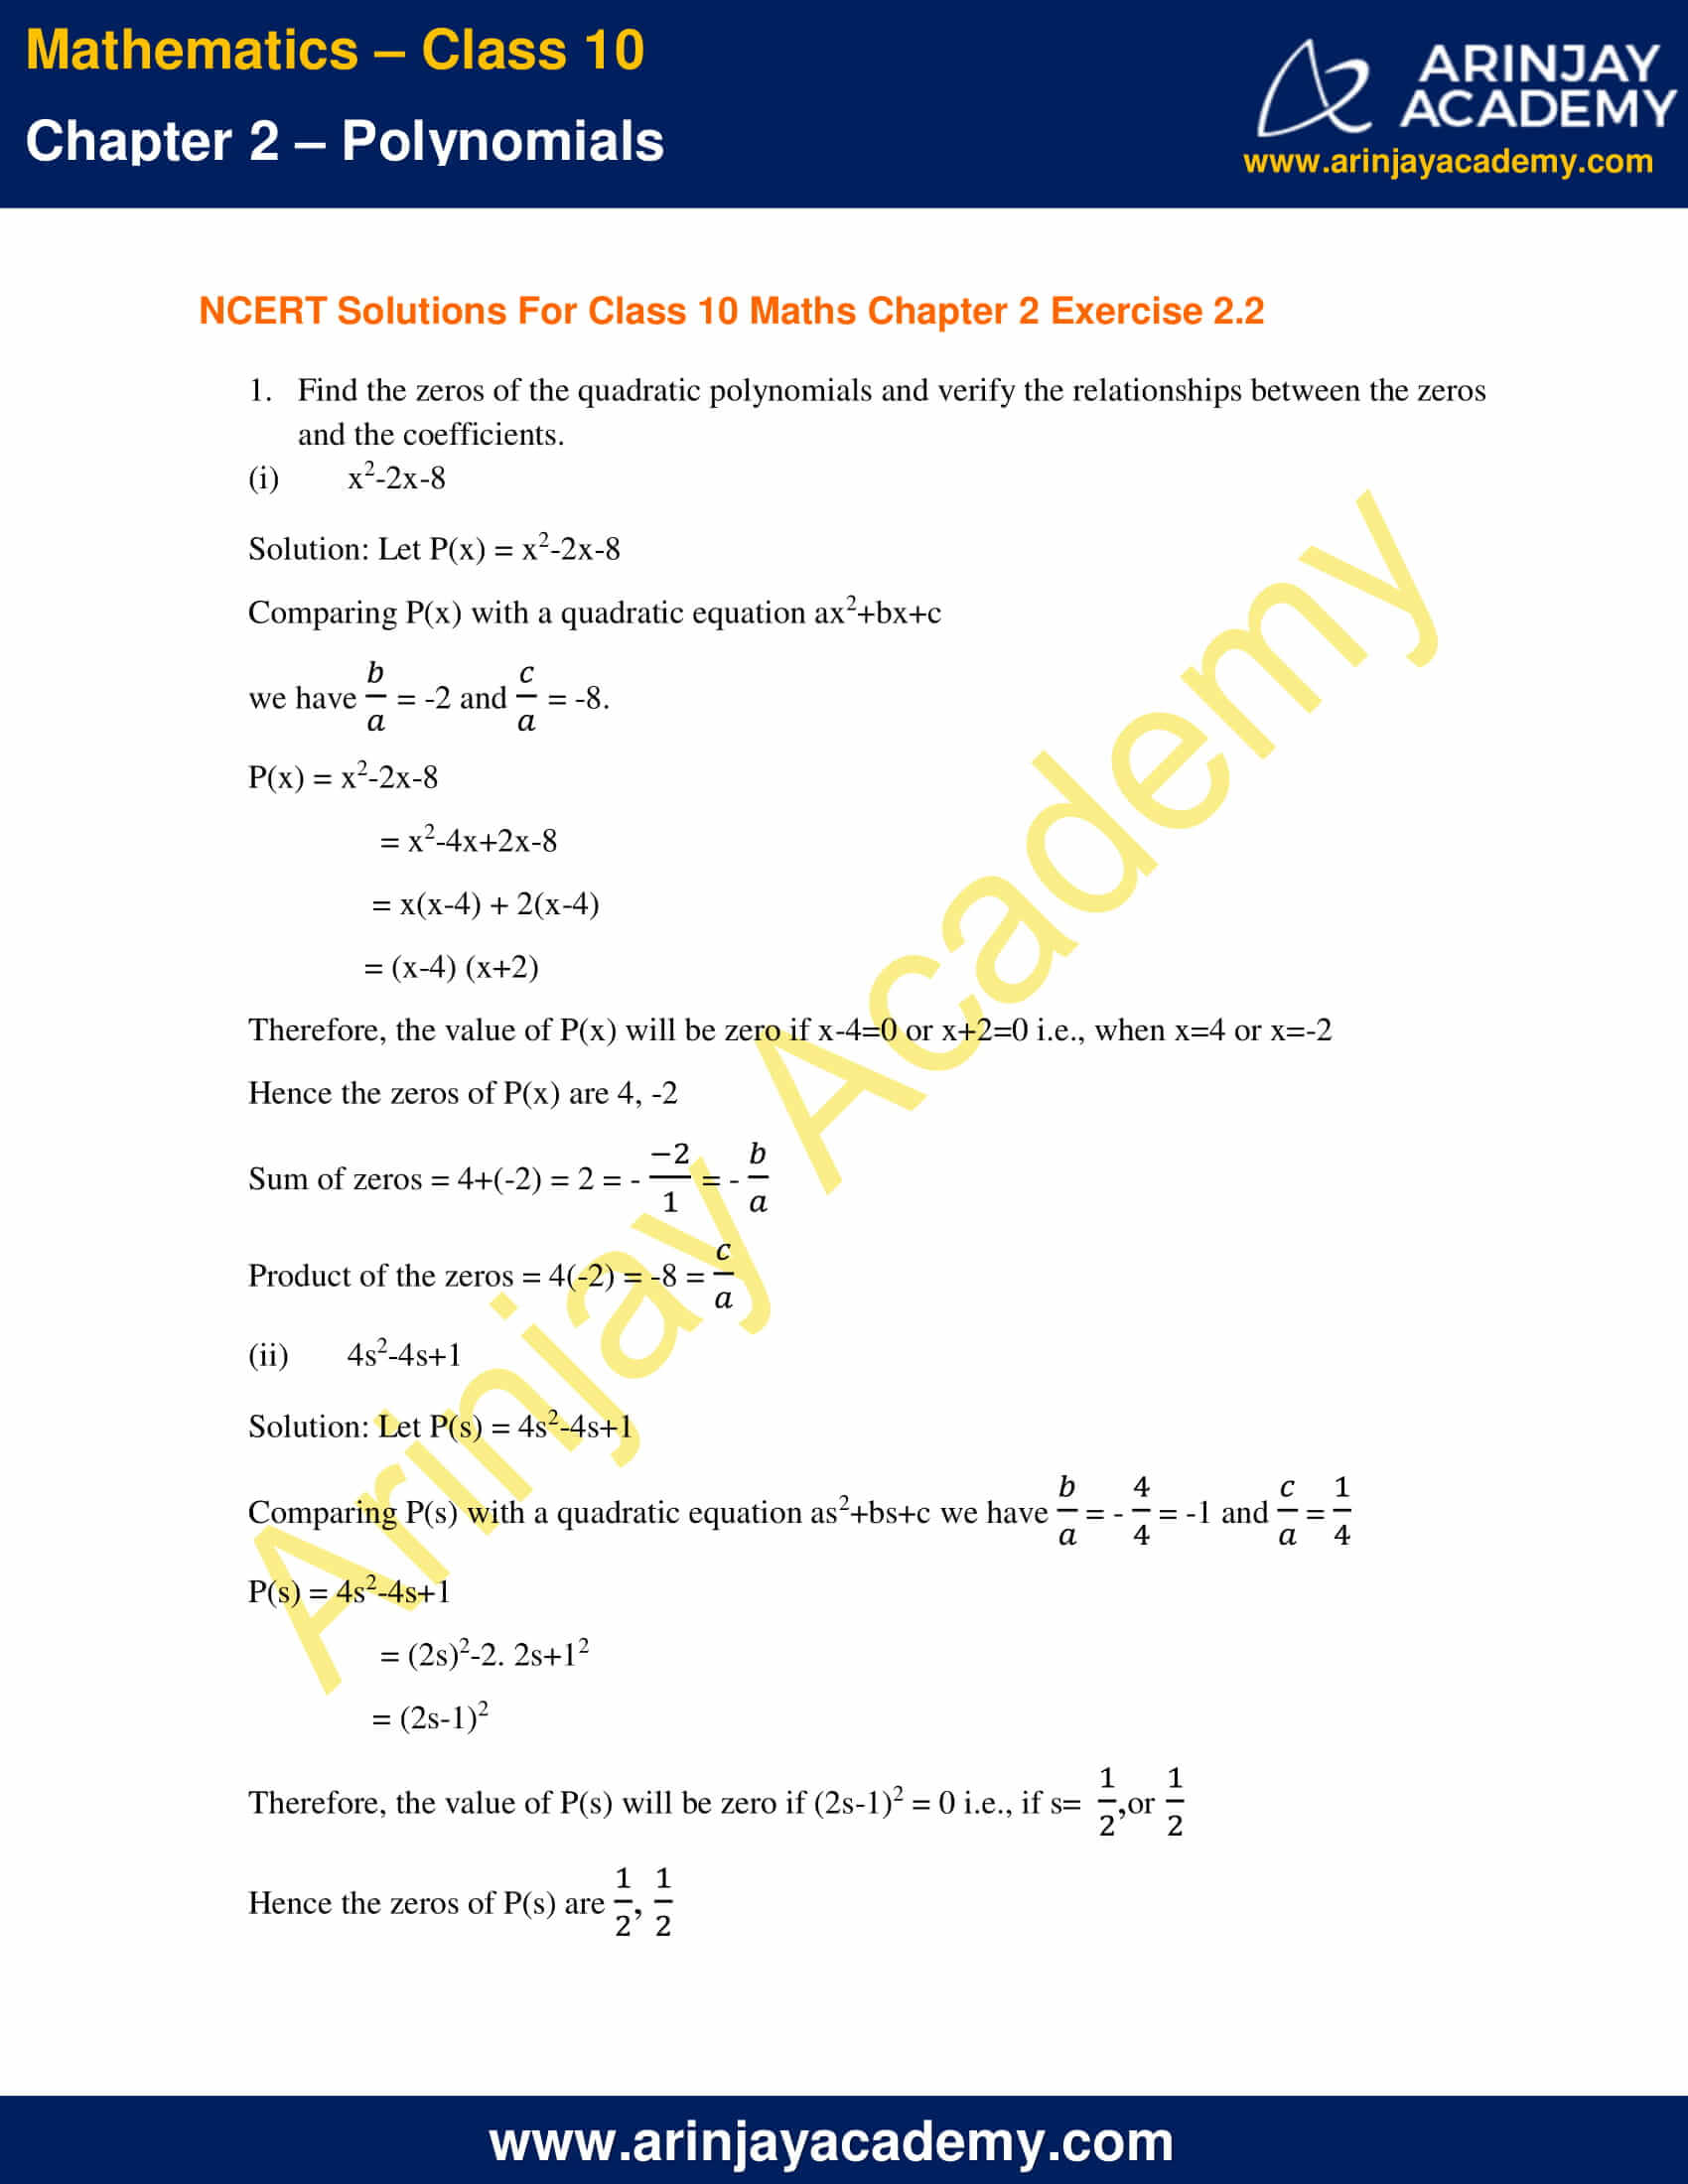 NCERT Solutions For Class 10 Maths Chapter 2 Exercise 2.2 part 1